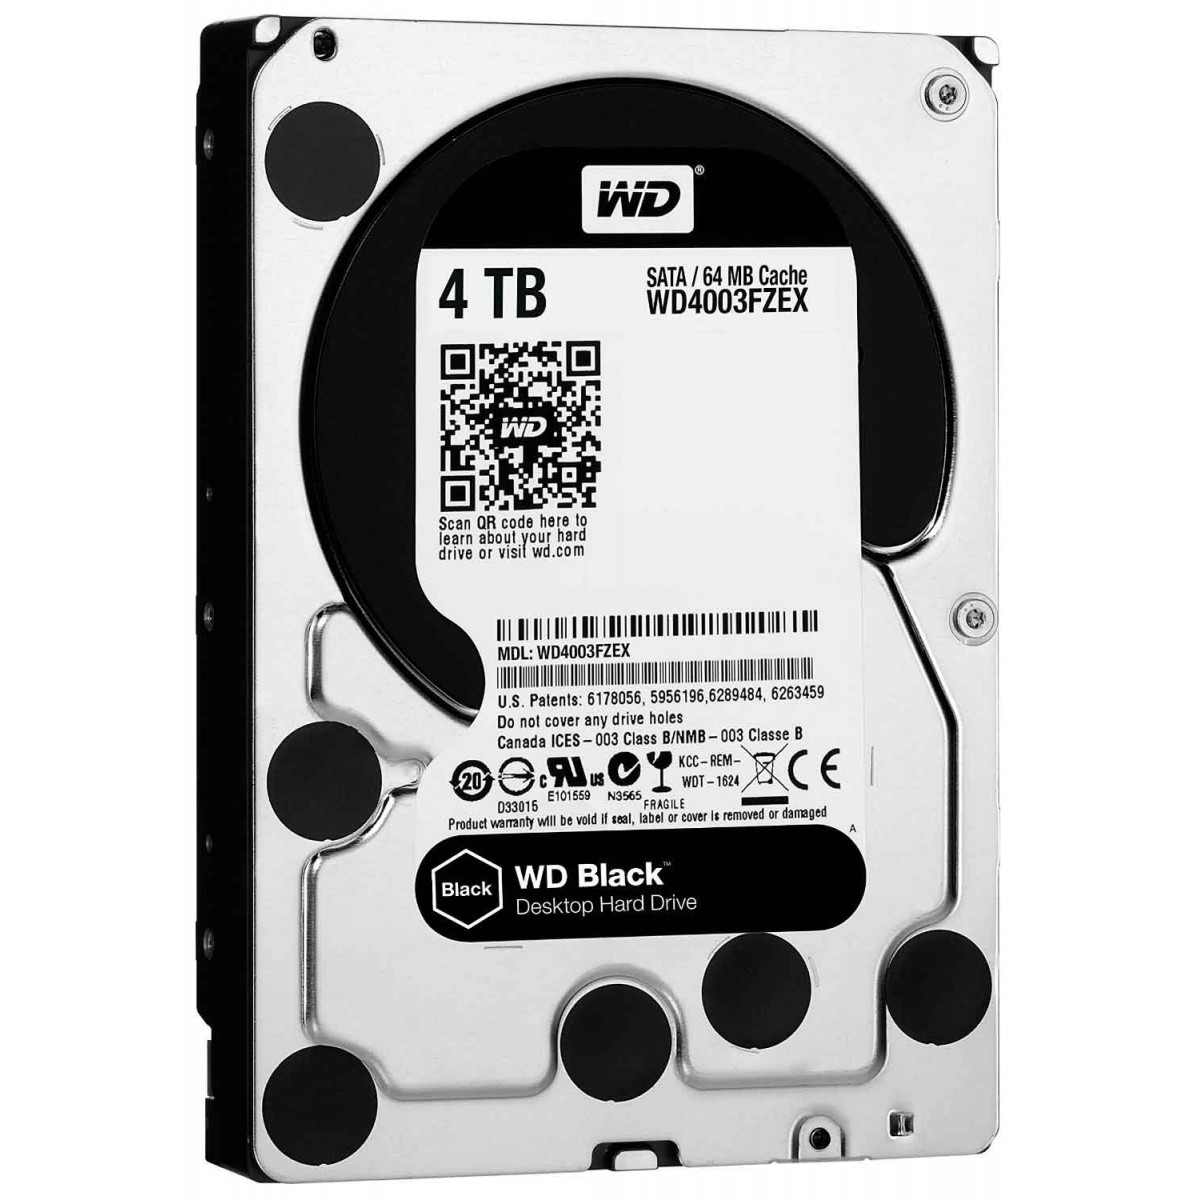 WD 4TB Black 7200RPM Desktop Hard drive